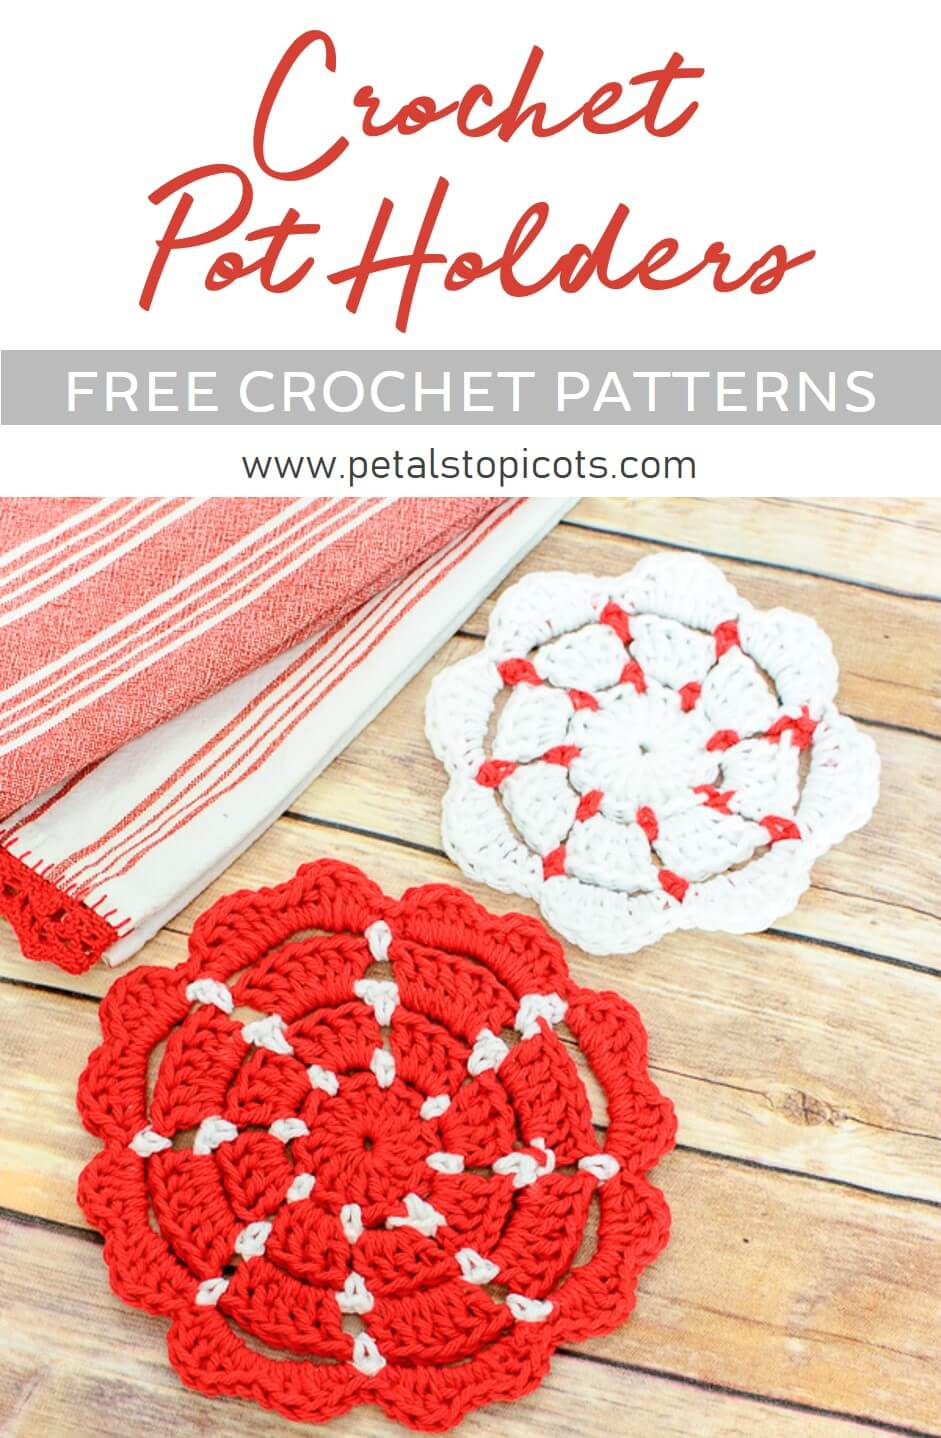 A simple yet classic design ... free crochet pot holder patterns. #petalstopicots